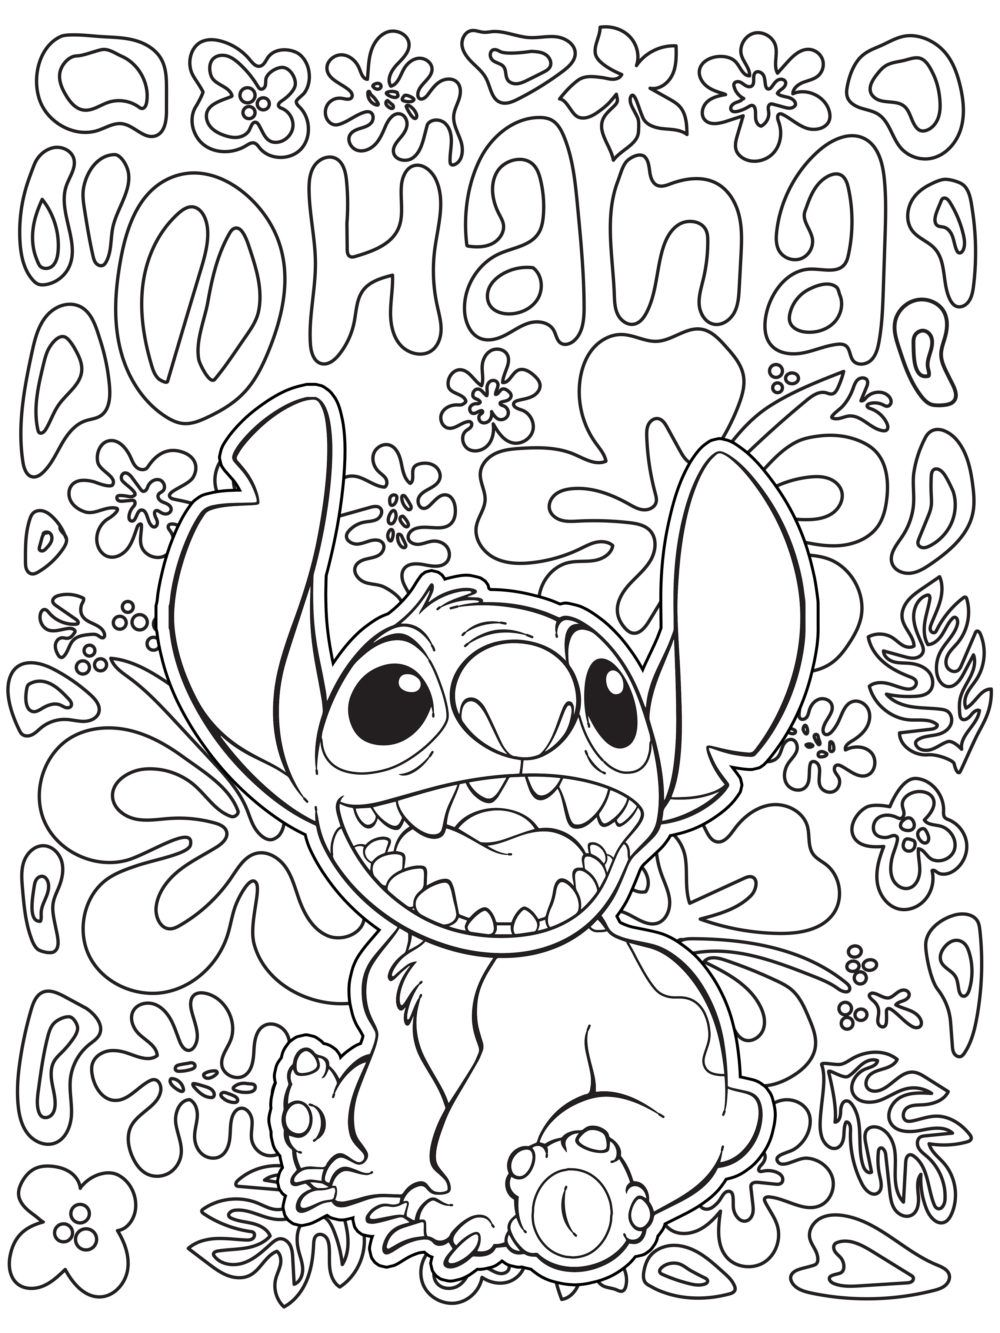 Celebrate National Coloring Book Day With Stitch Coloring Pages Disney Coloring Sheets Disney Coloring Pages